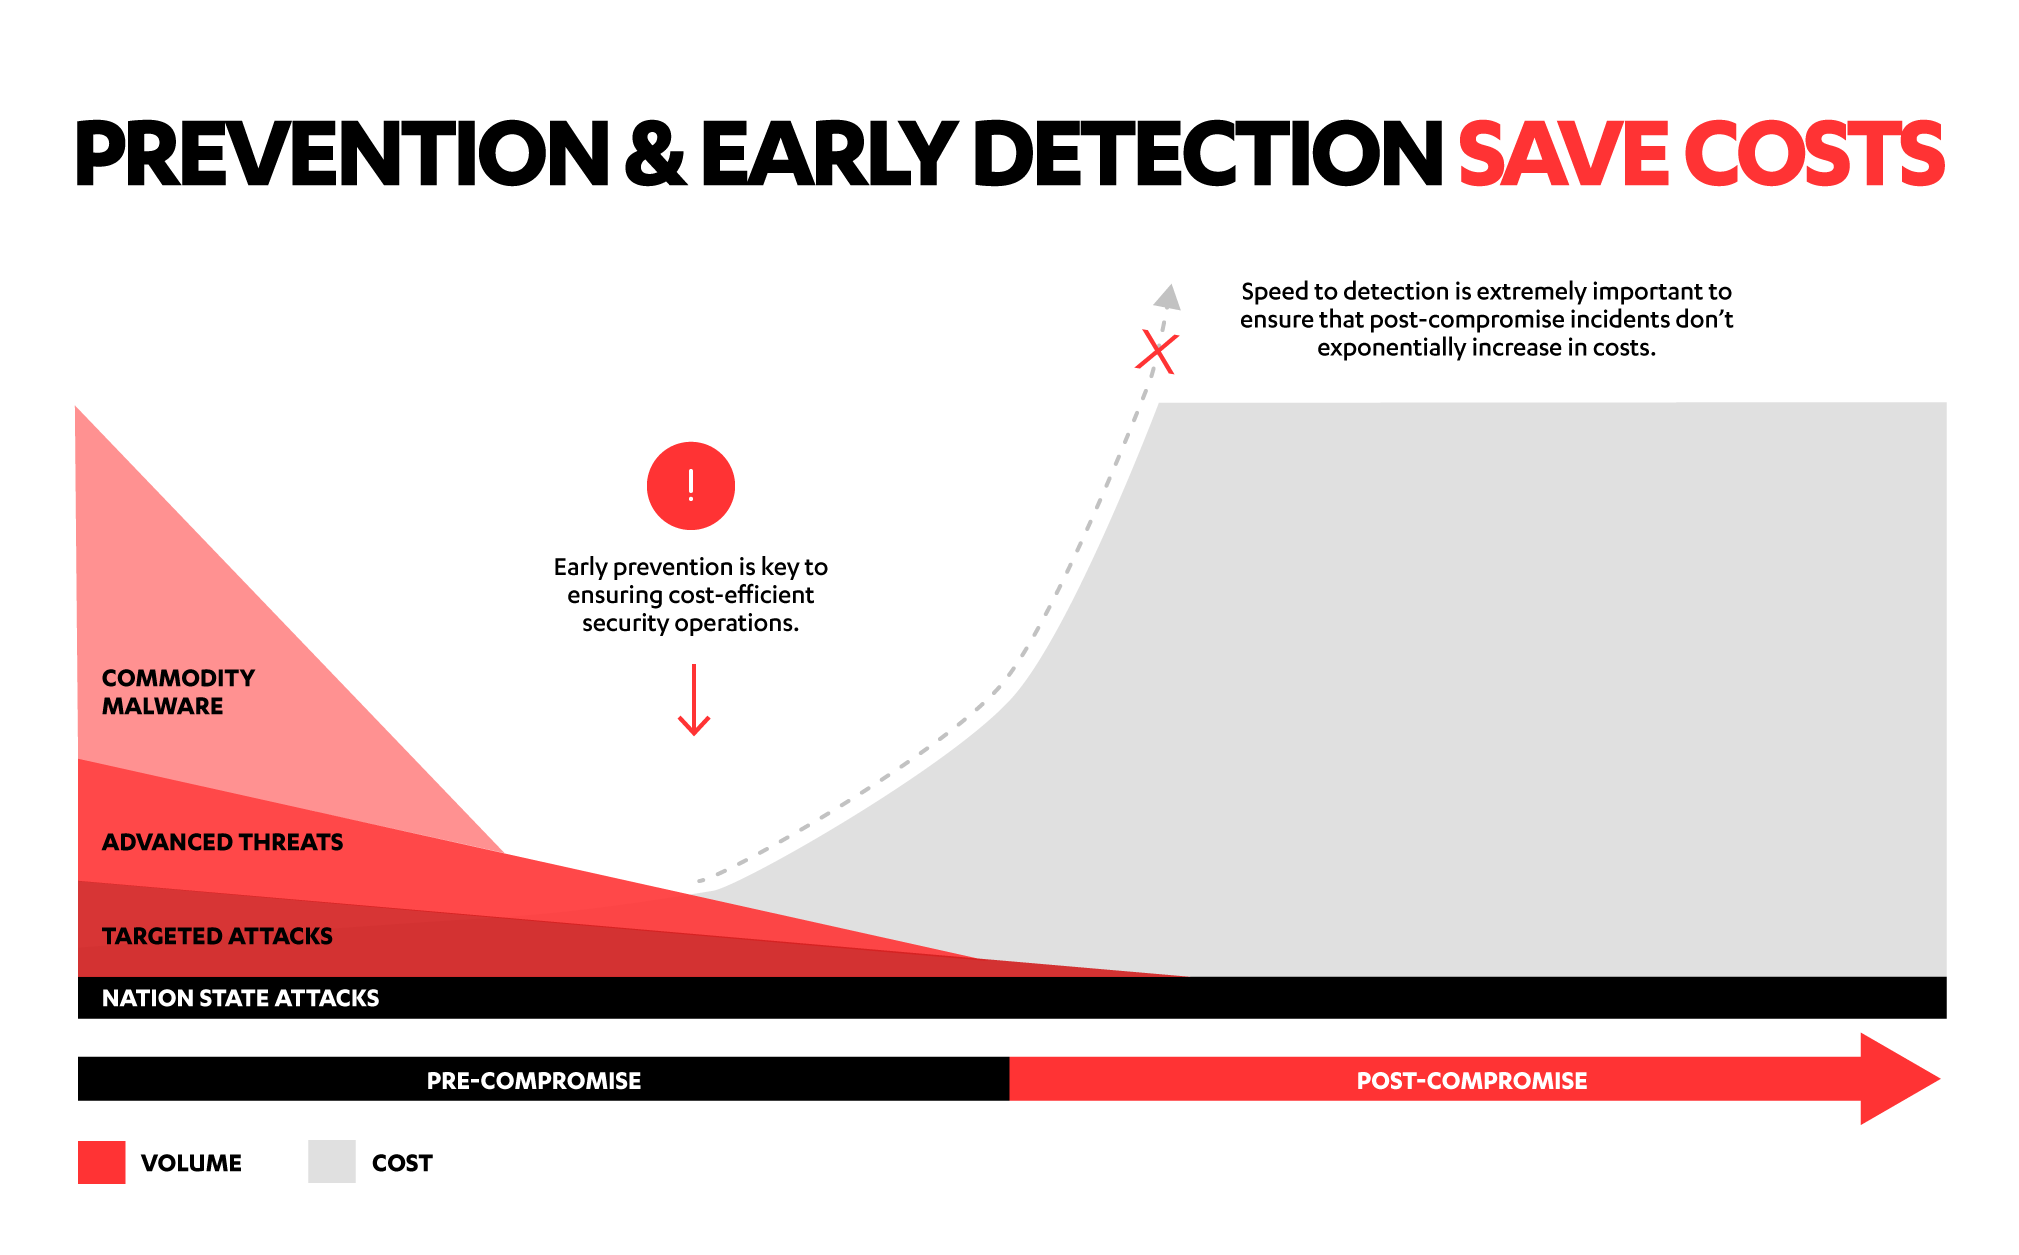 Prevention and early detection save costs